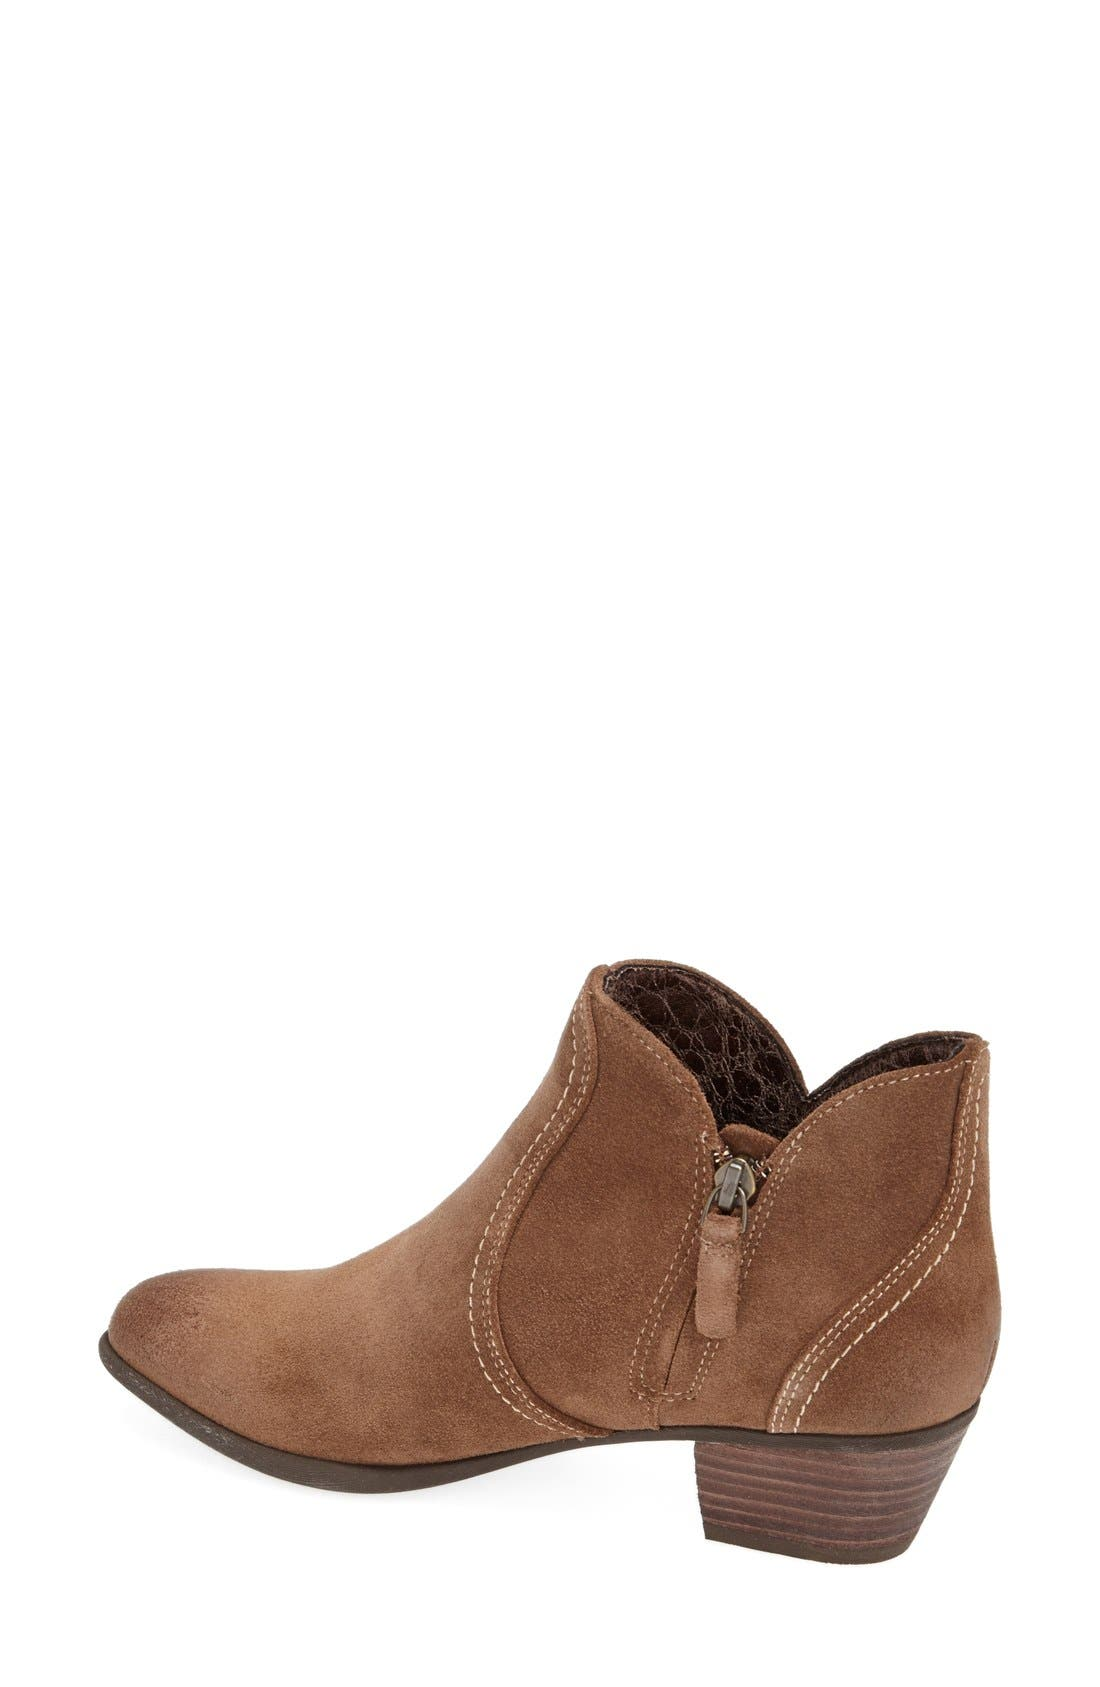 'Astor' Suede Ankle Bootie,                             Alternate thumbnail 4, color,                             201